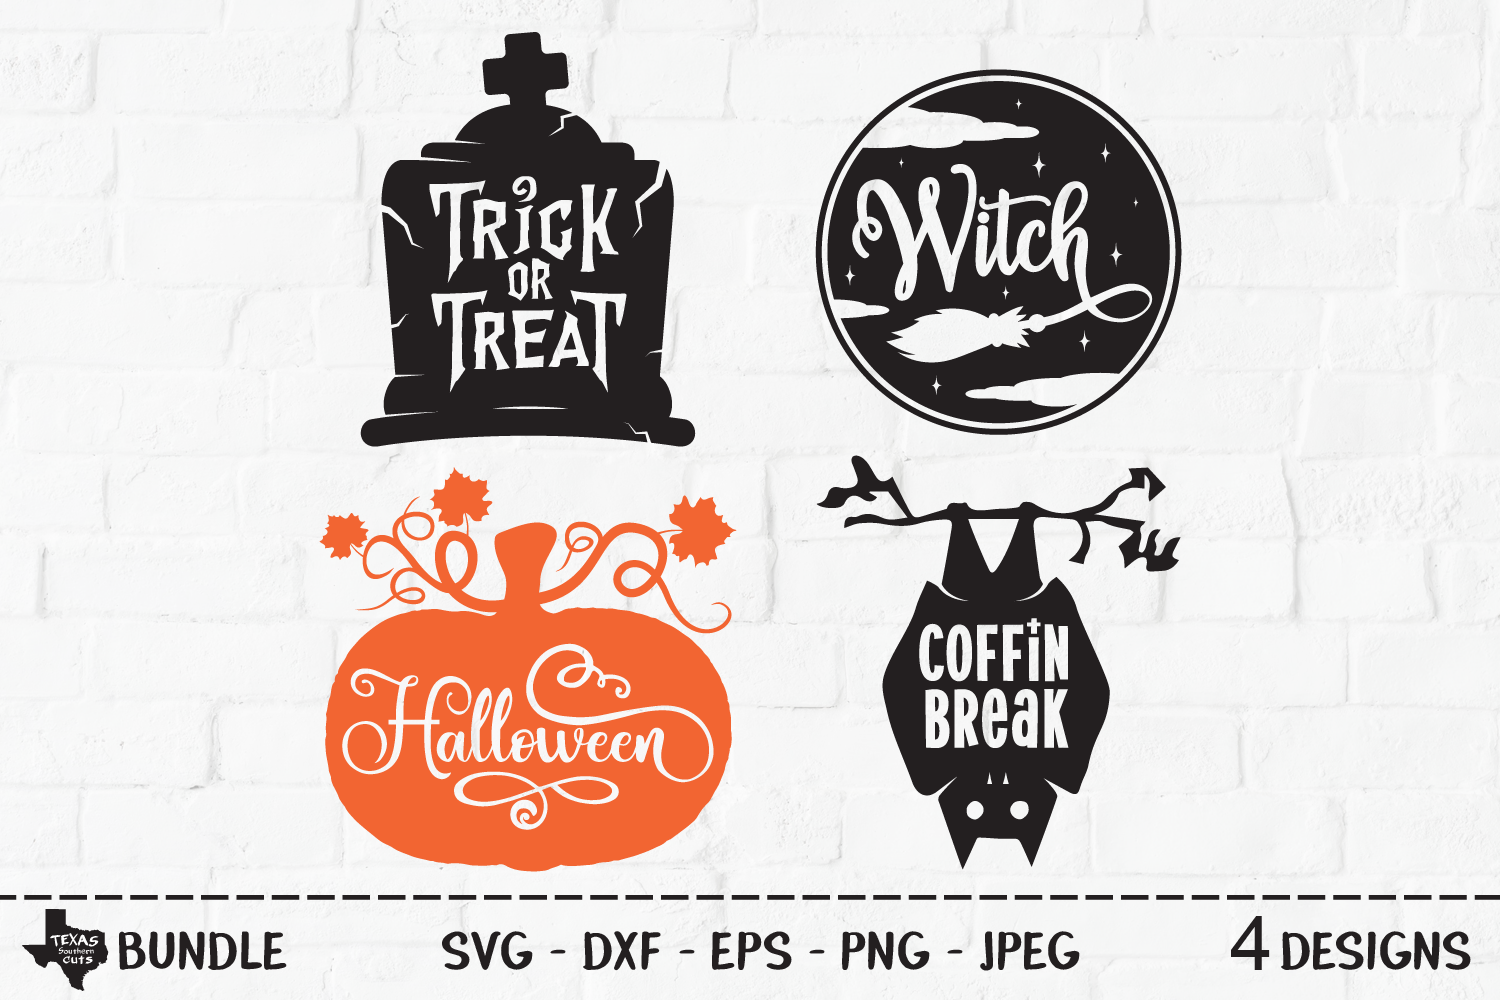 Spooky Halloween Bundle Graphic By Texassoutherncuts Creative Fabrica